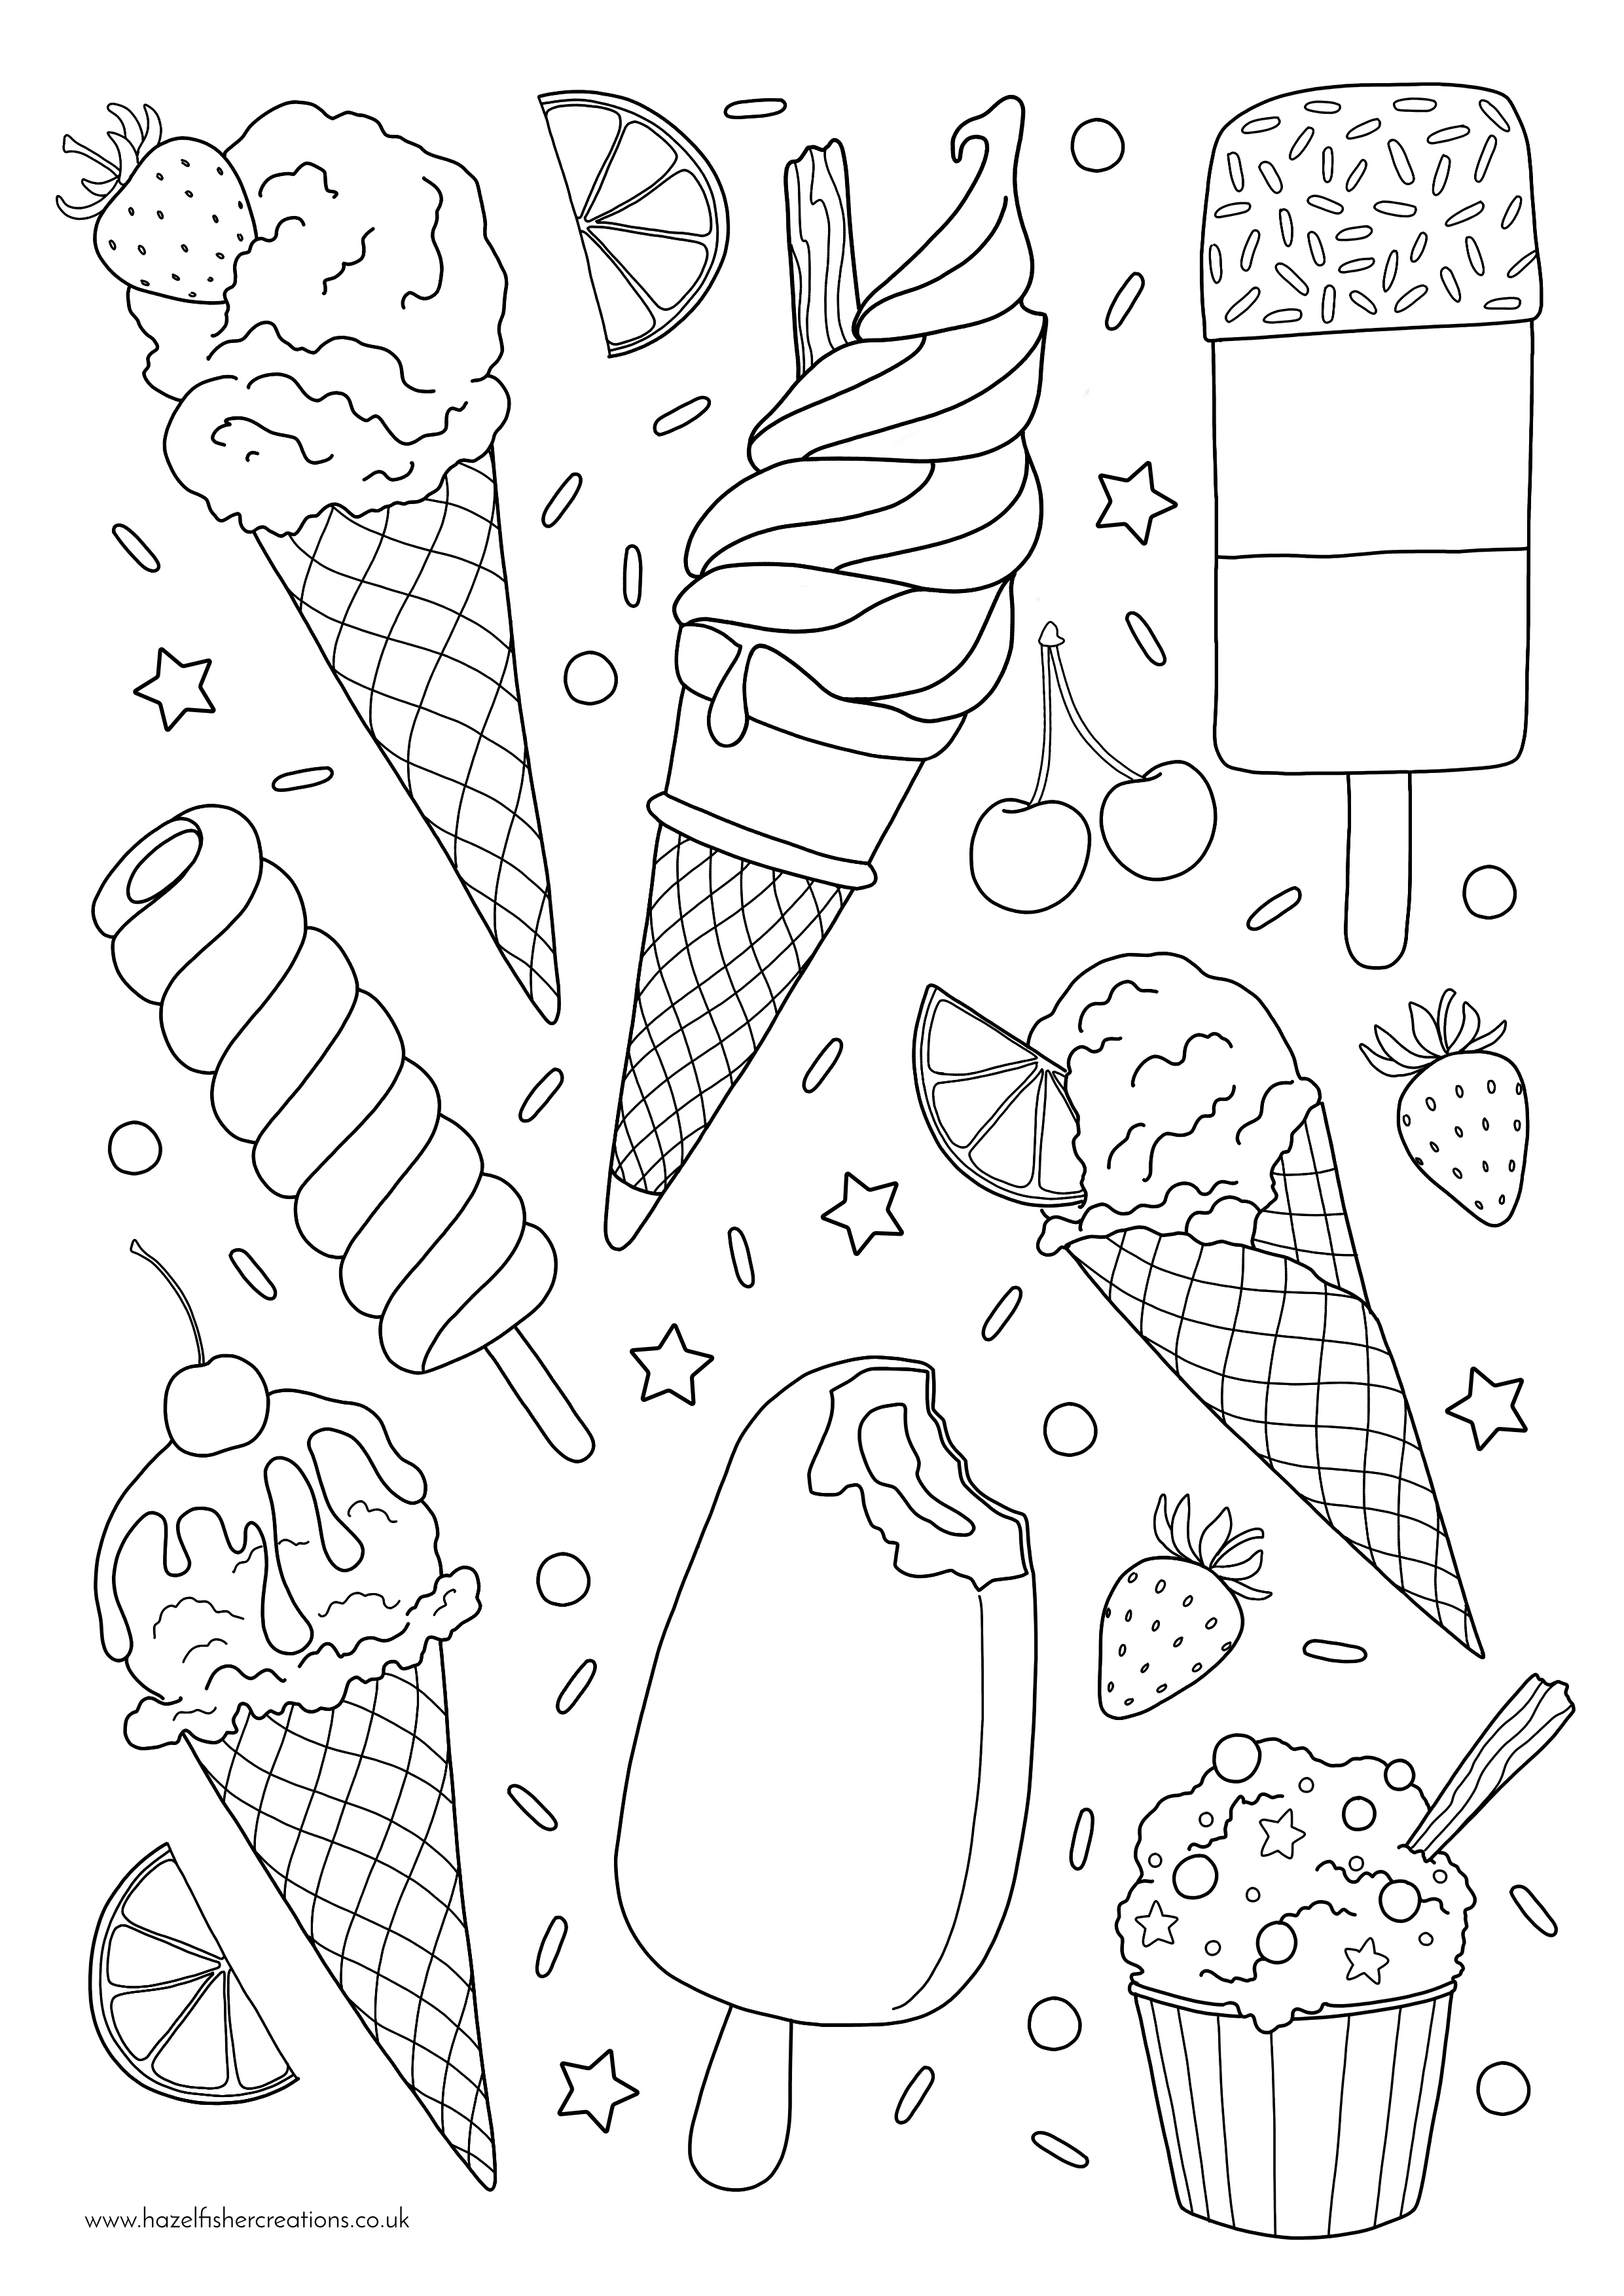 Ice Cream Colouring In Activity Sheet   image